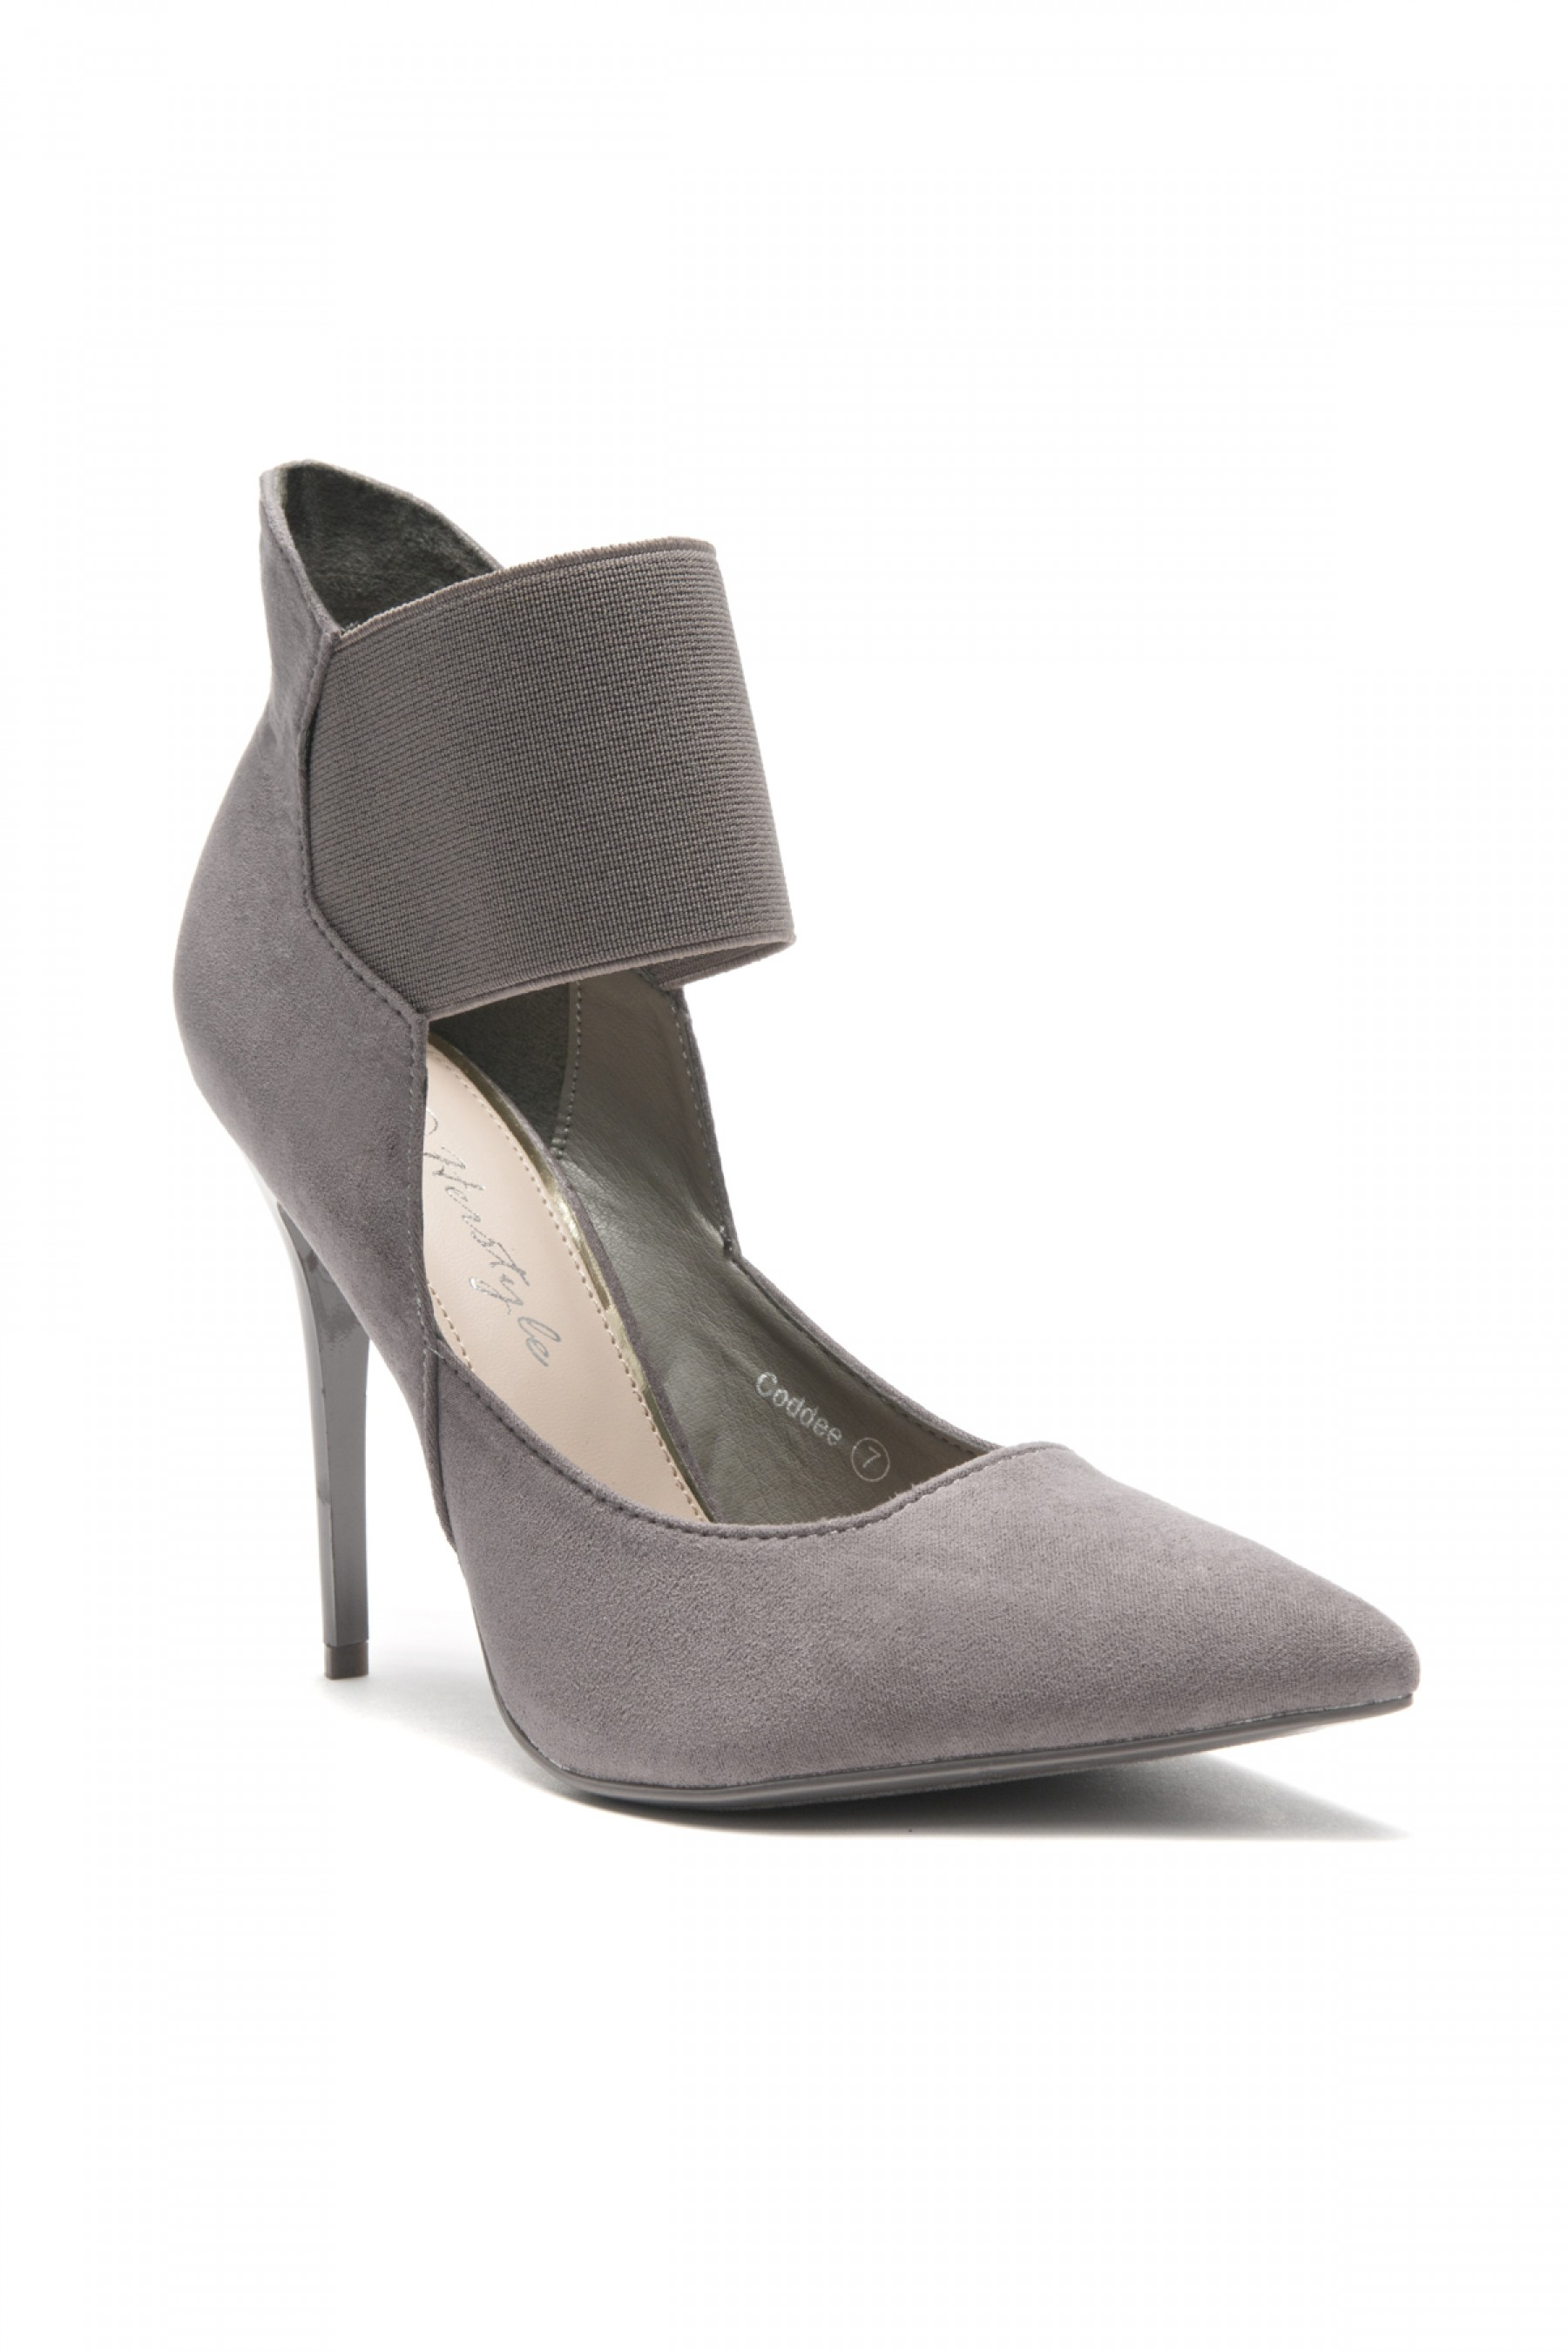 HerStyle Coddee Faux Suede ankle with elasticated strap Pointy Toe Stiletto Pump (Grey)